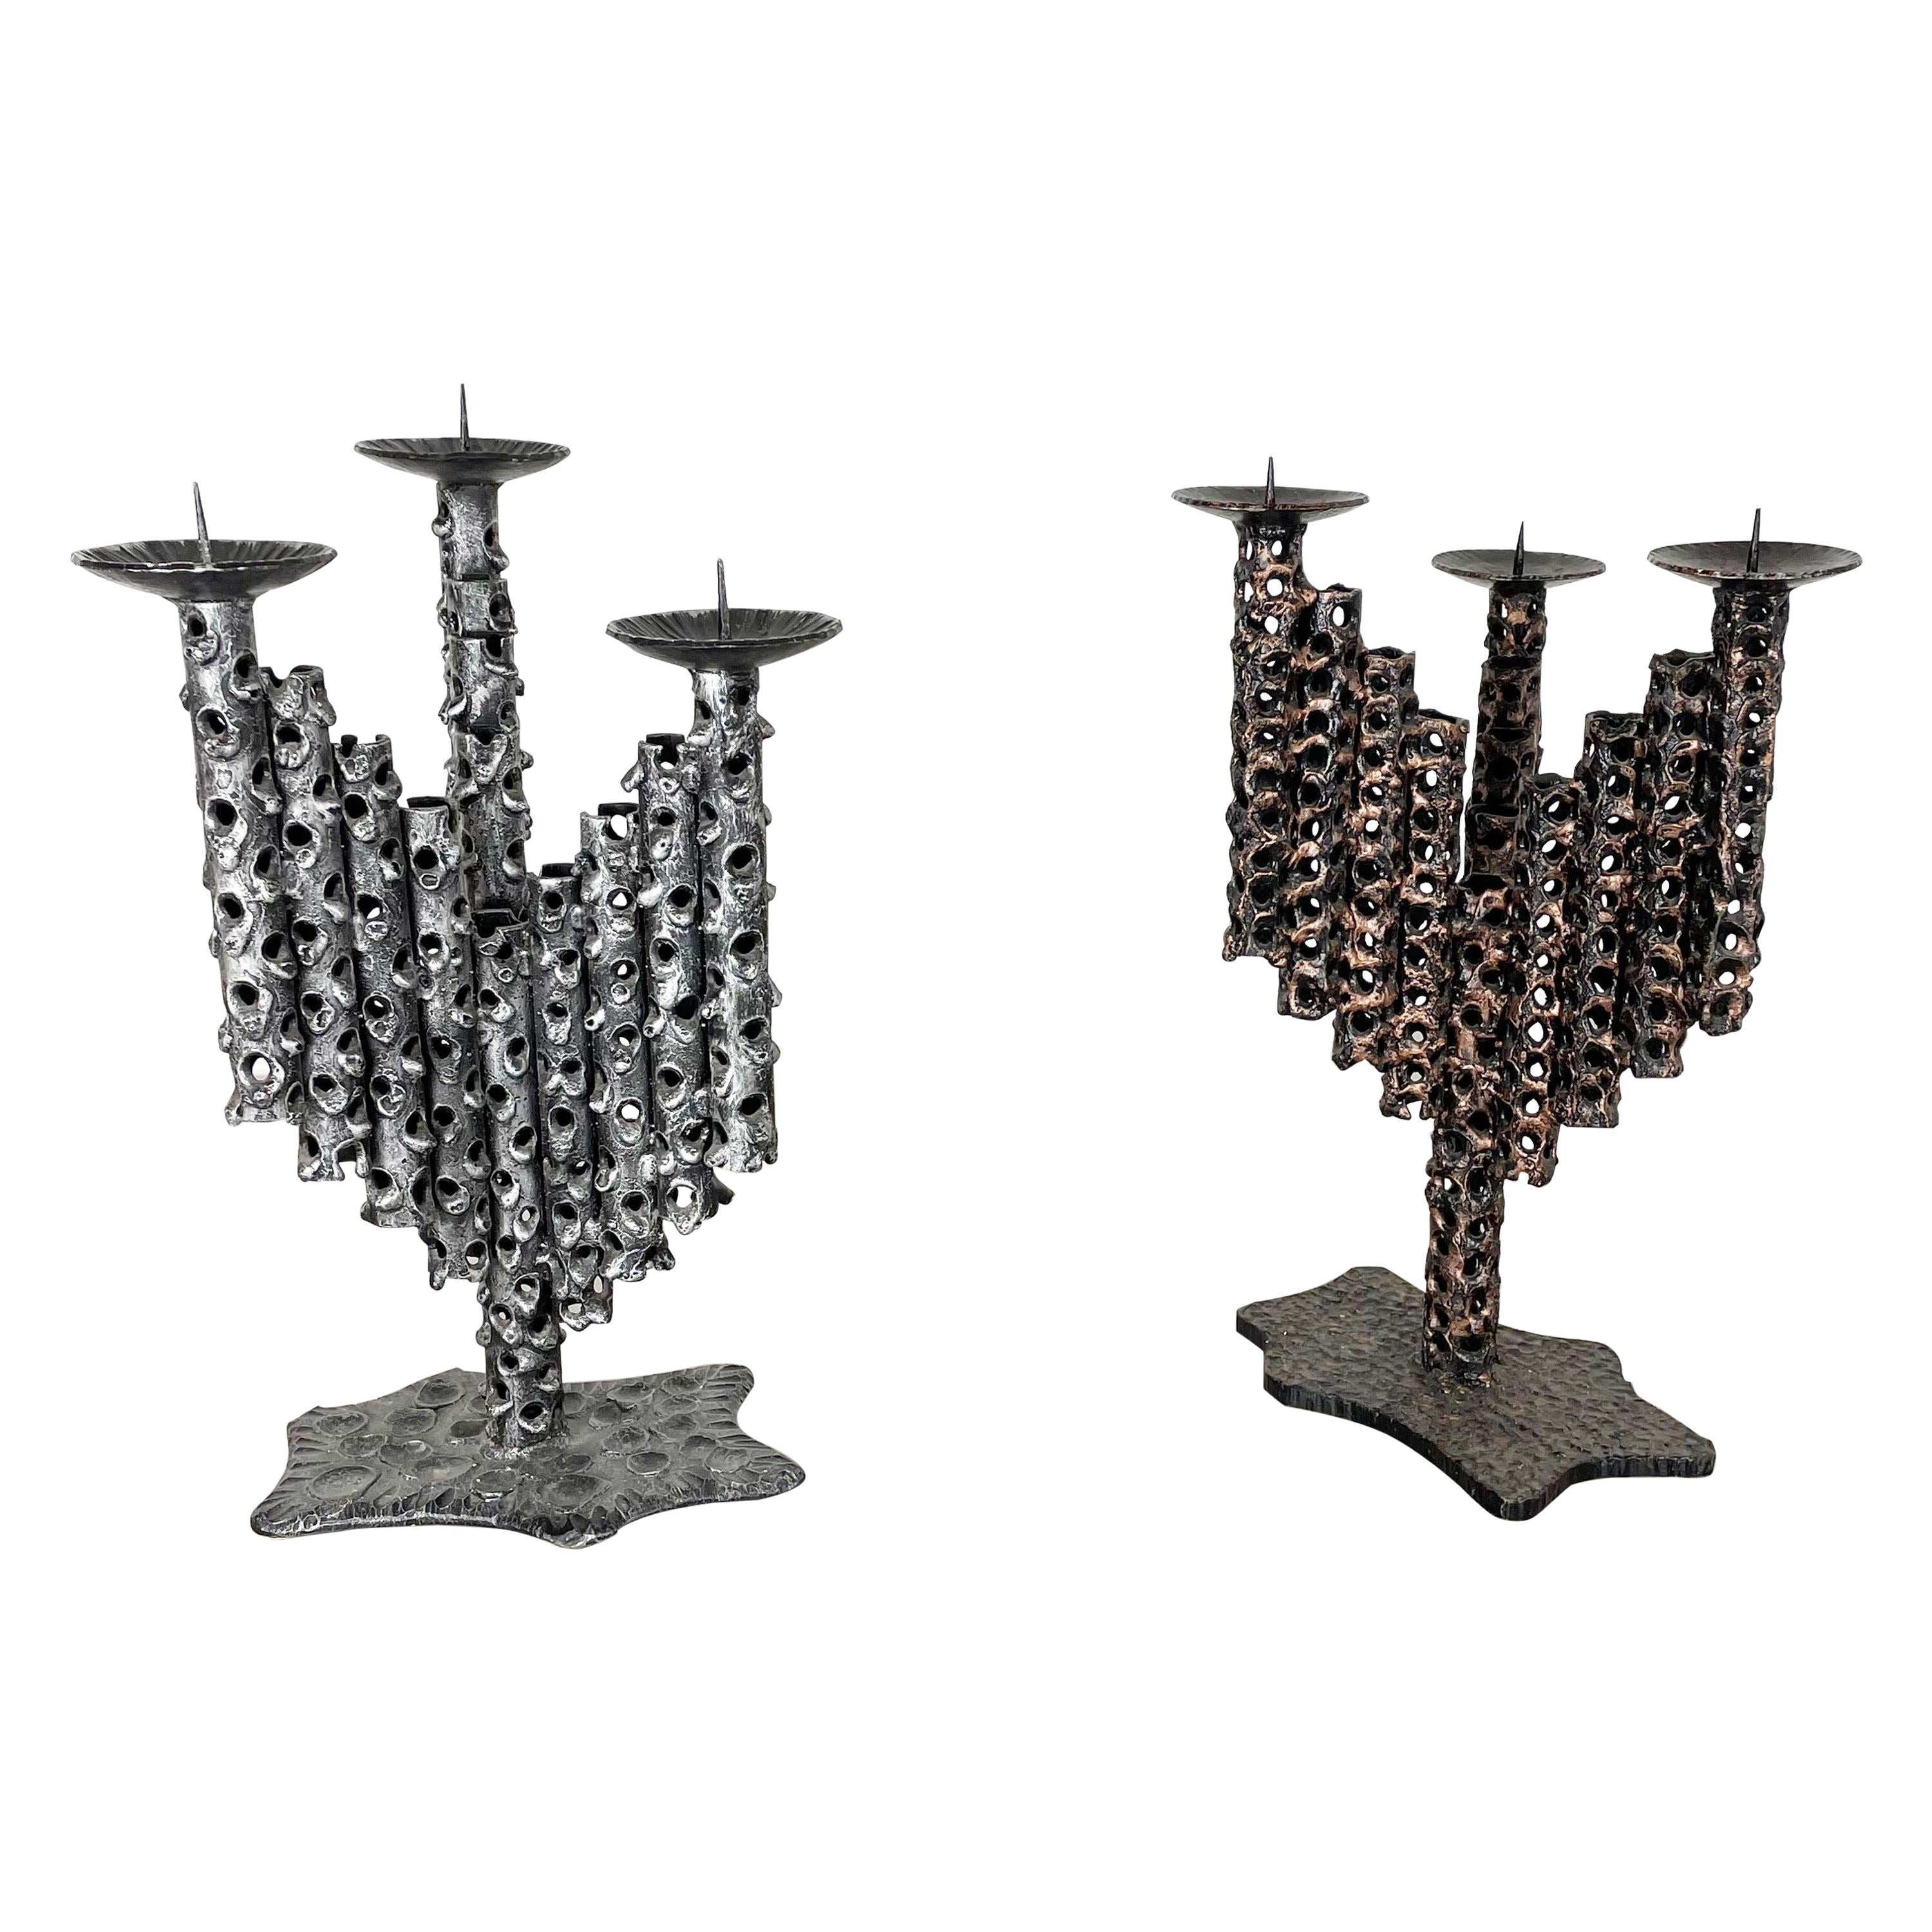 Set of 2 Modernist Vintage 1970s Sculptural Brutalist Metal Candleholder, France